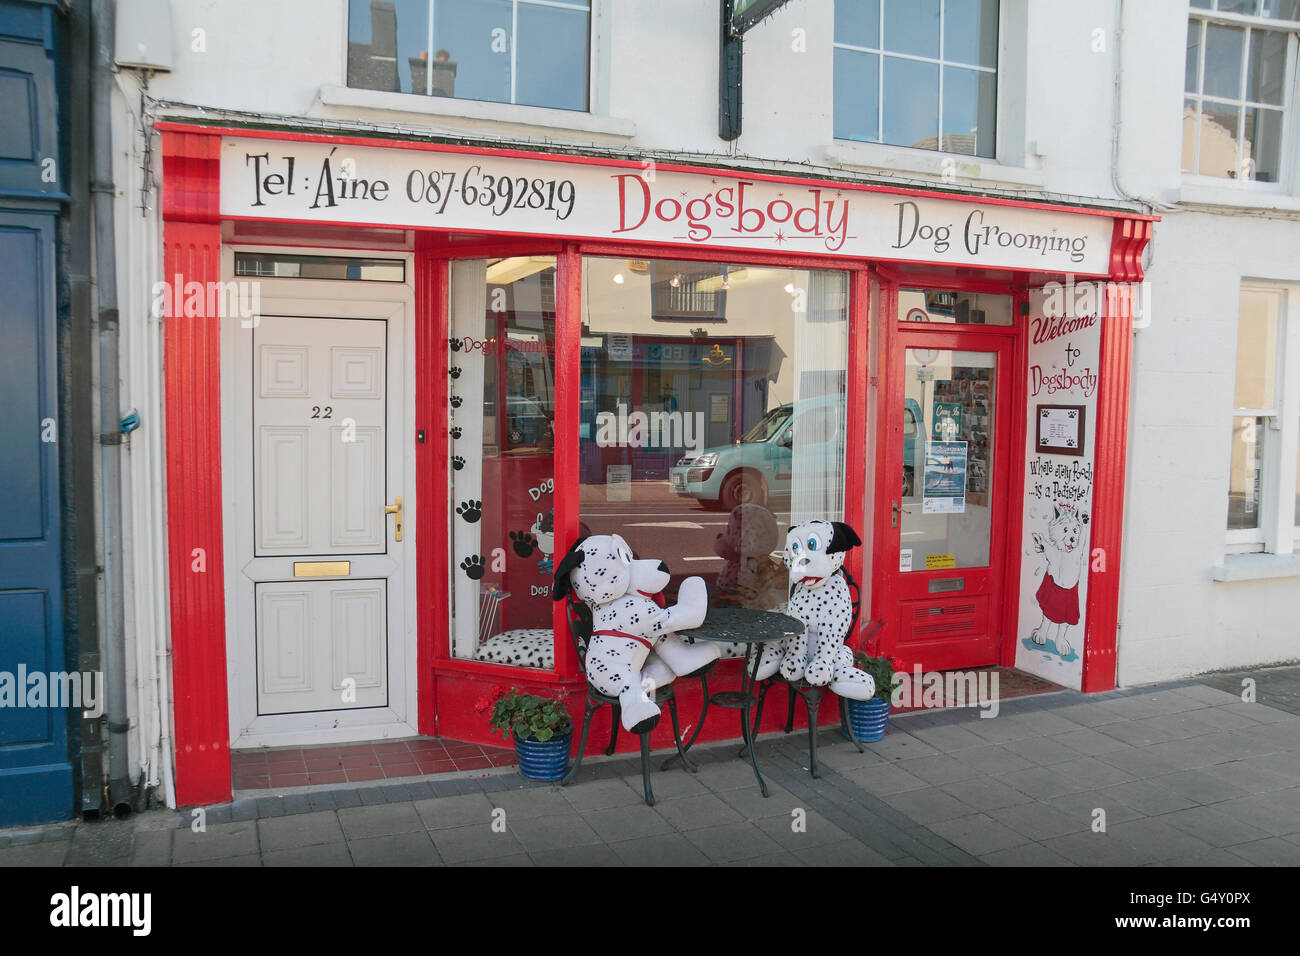 65a4c62d9ccf6 The Dogsbody Dog Grooming shop in Dungarvan, Co. Waterford, Ireland (Eire)